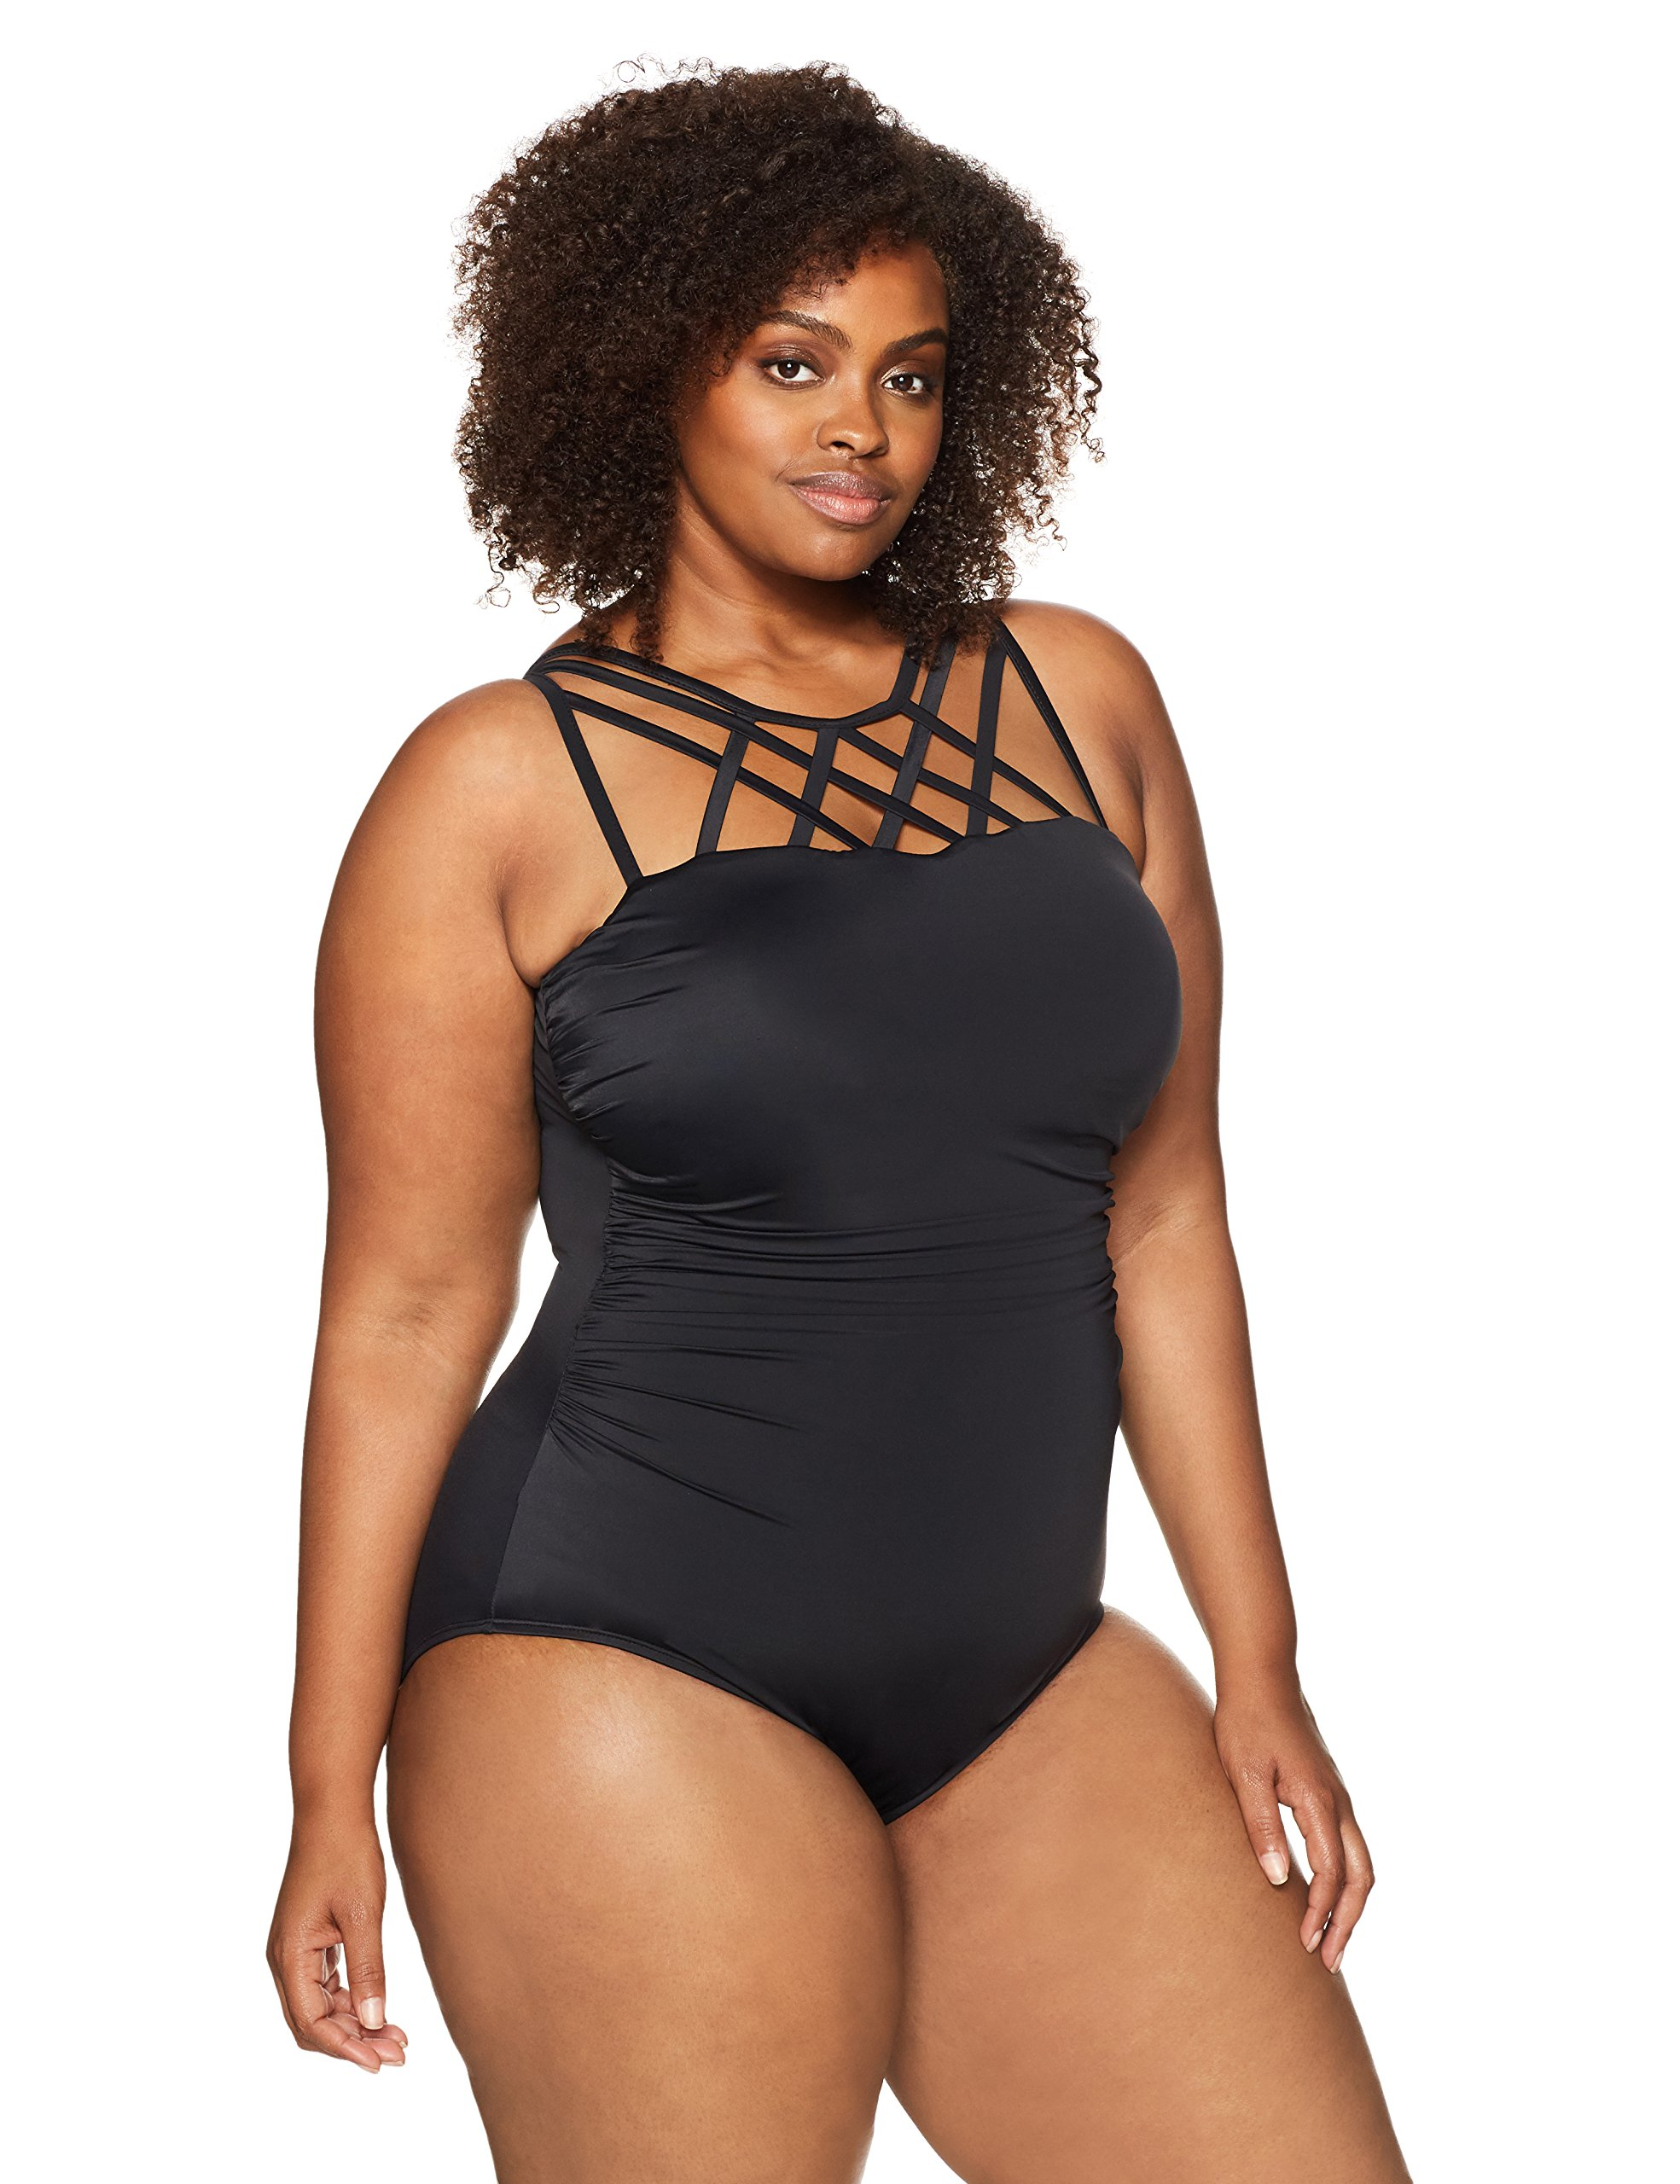 Coastal Blue Women's Plus Size Control Swimwear Top Strap Detail One Piece Swimsuit, Black, 2X (20W-22W)